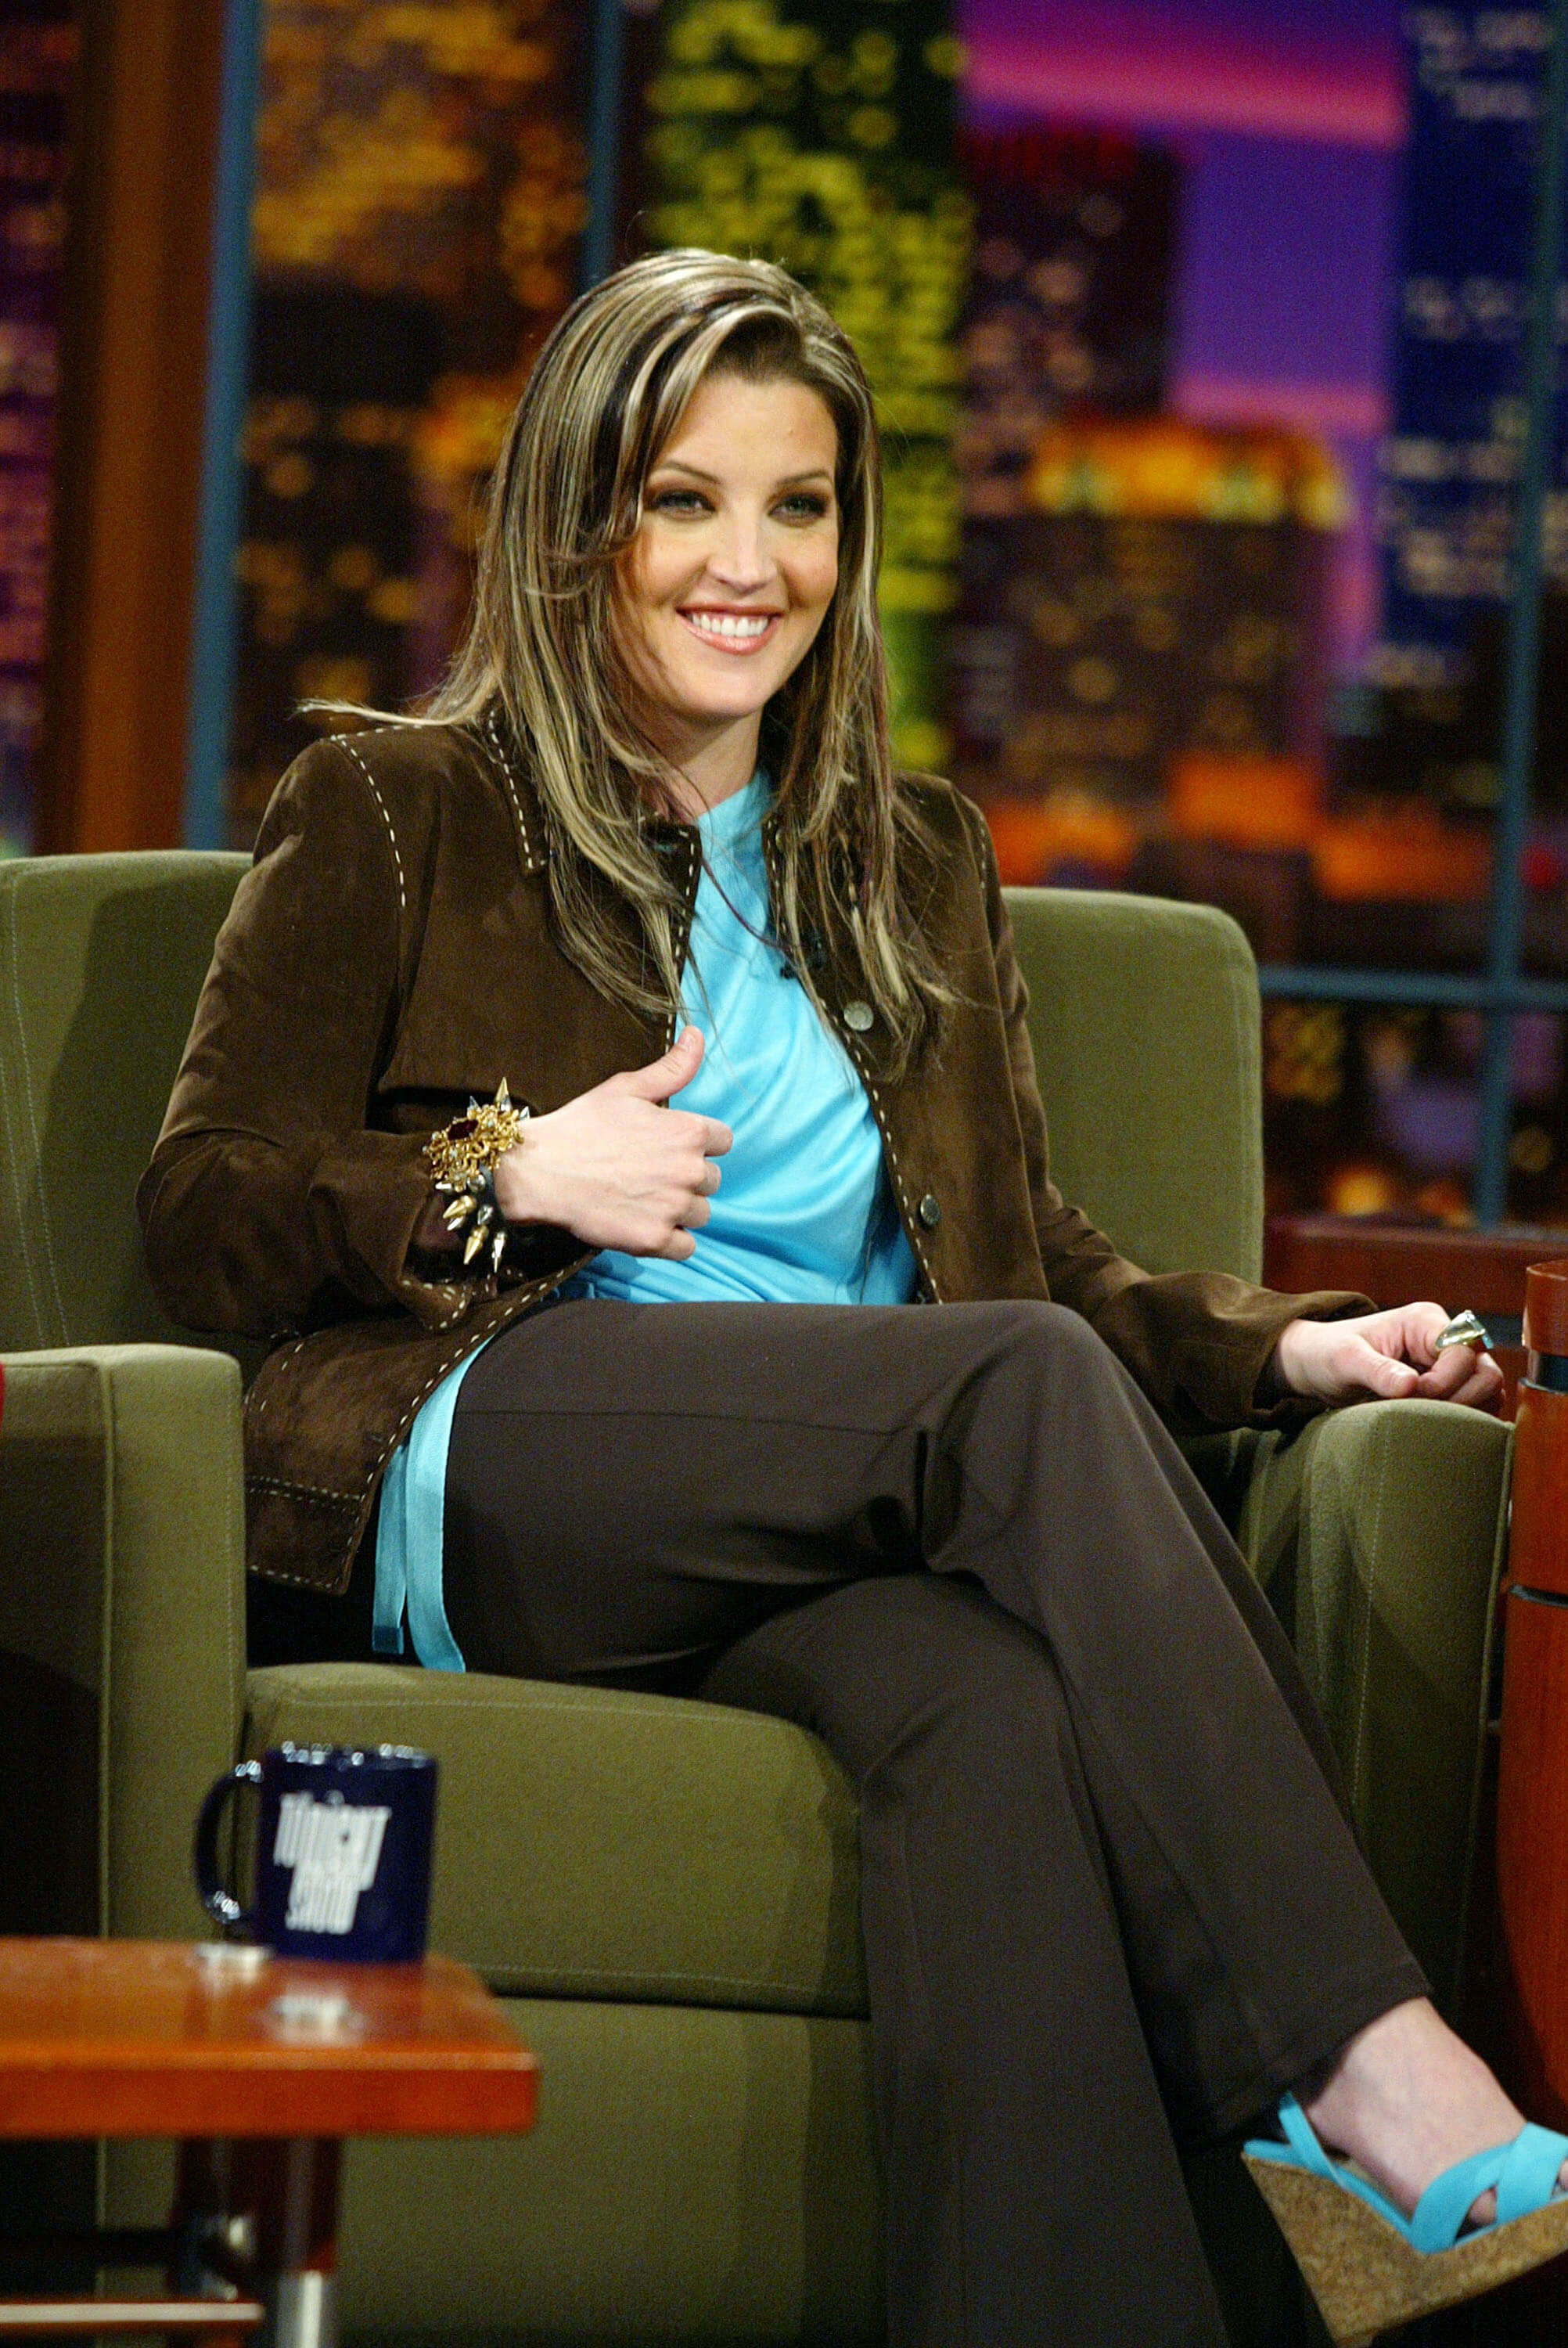 49 hot photos of Lisa Marie Presley - a delight for fans